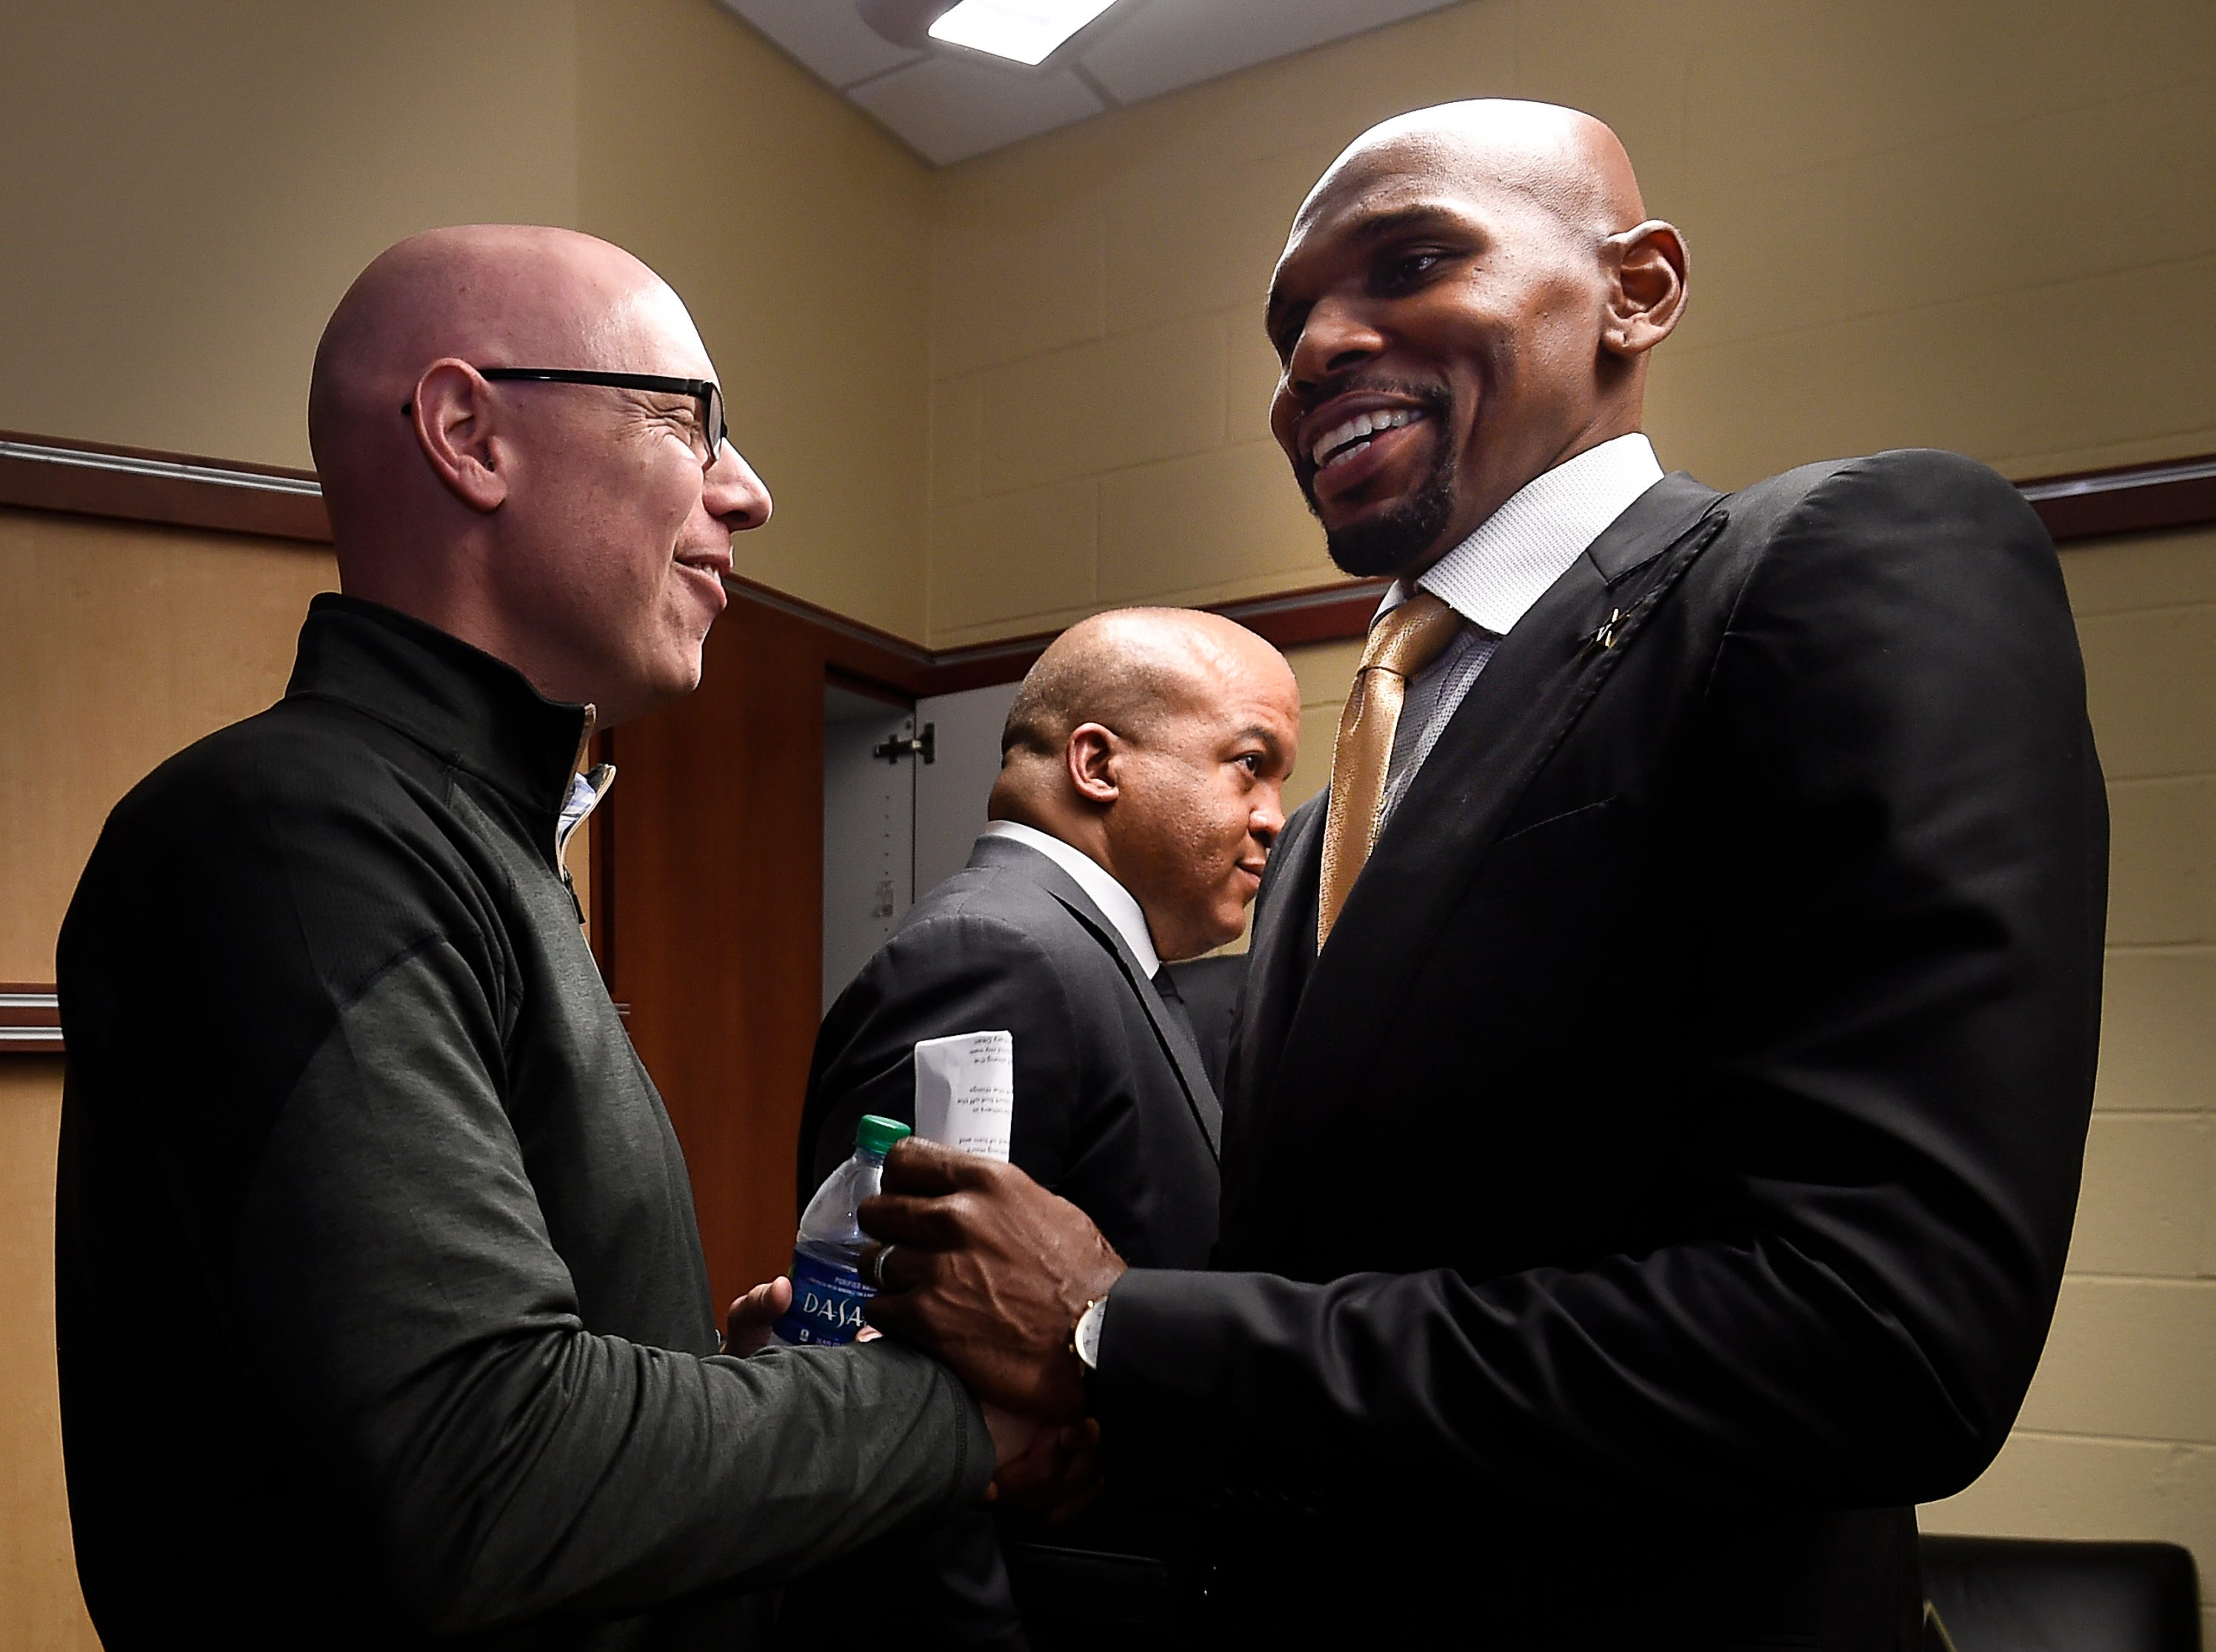 Vanderbilt asst. vice chancellor Nick Perlick greets new basketball coach Jerry Stackhouse (rt) at Memorial Gym Monday, April 8, 2019 in Nashville, Tenn.